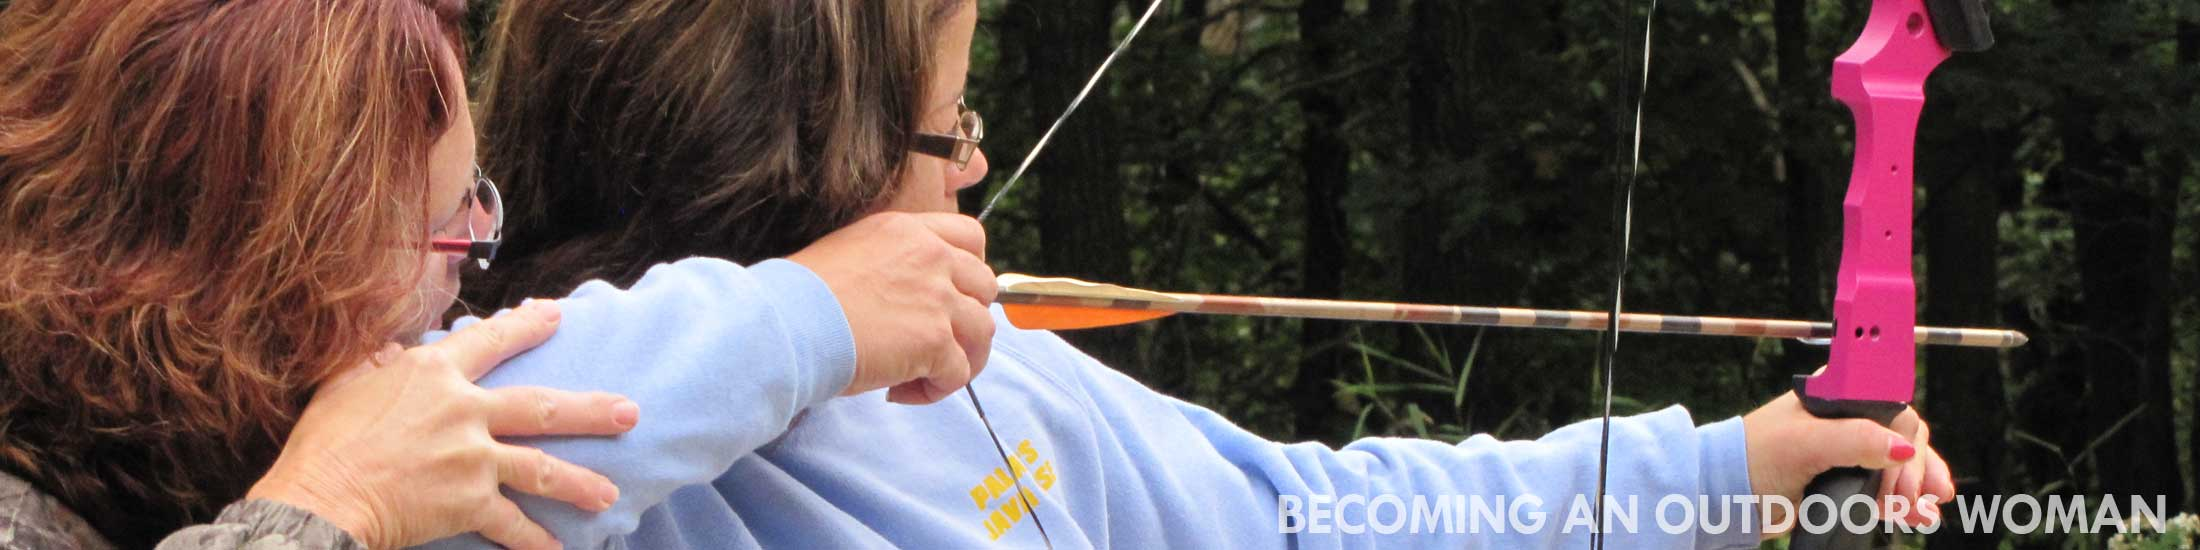 Archery, Becoming an Outdoors Woman workshop